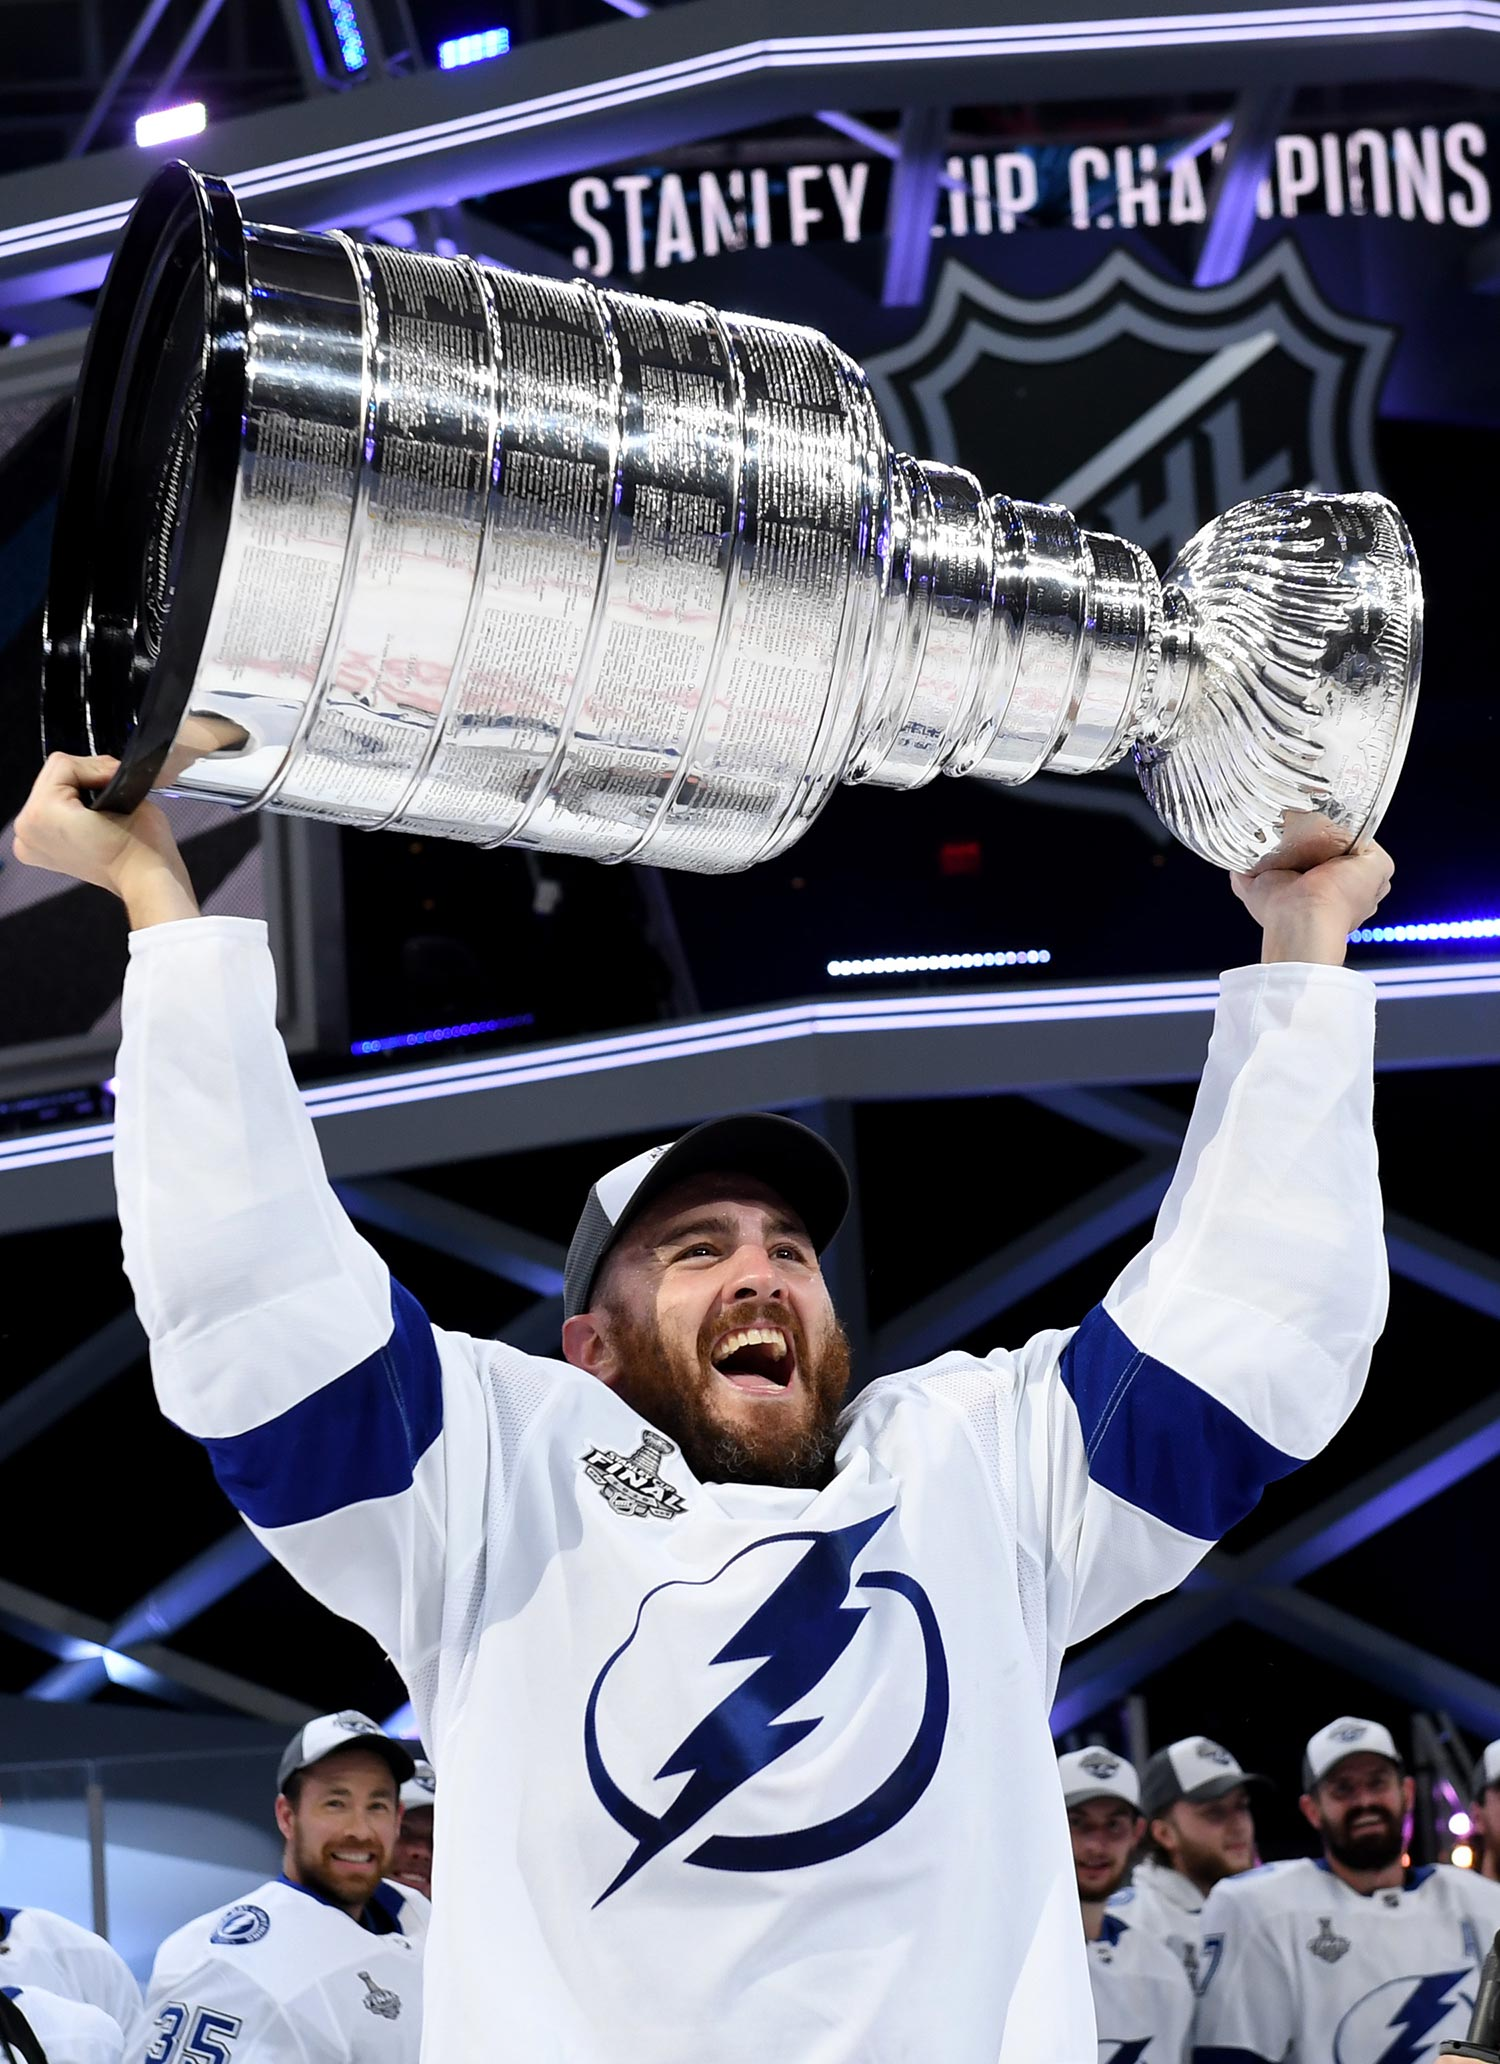 Photo of Kevin Shattenkirk #22 of the Tampa Bay Lightning hoisting the Stanley Cup over his head after the Tampa Bay Lightning defeated the Dallas Stars 2-0 in Game Six of the NHL Stanley Cup Final on September 28, 2020 in Edmonton, Alberta, Canada.